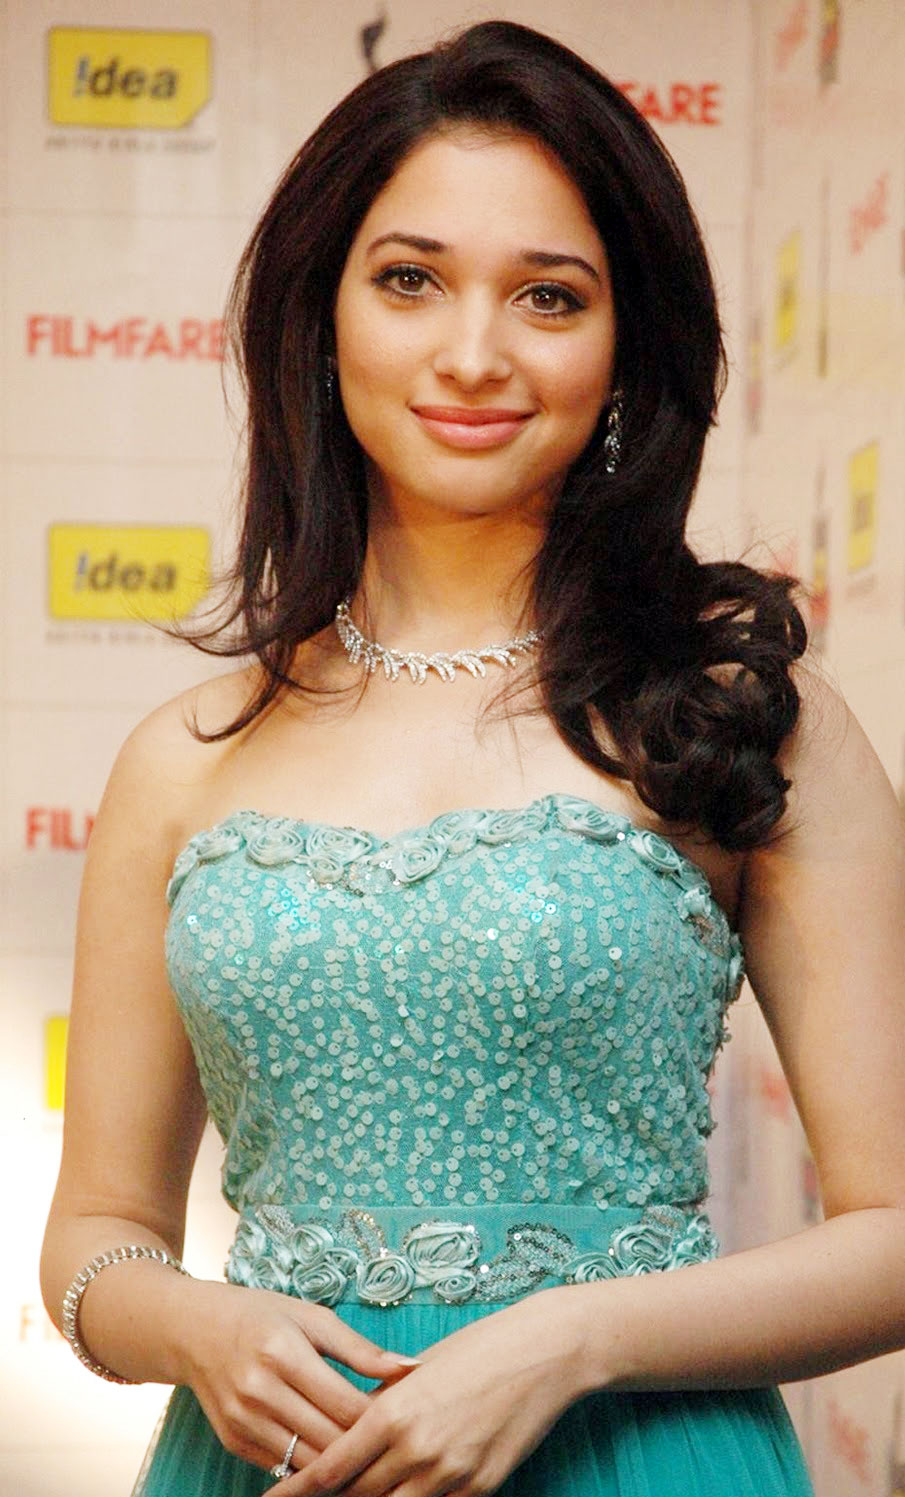 Tamanna Home: At Idea Filmfare Awards Stills